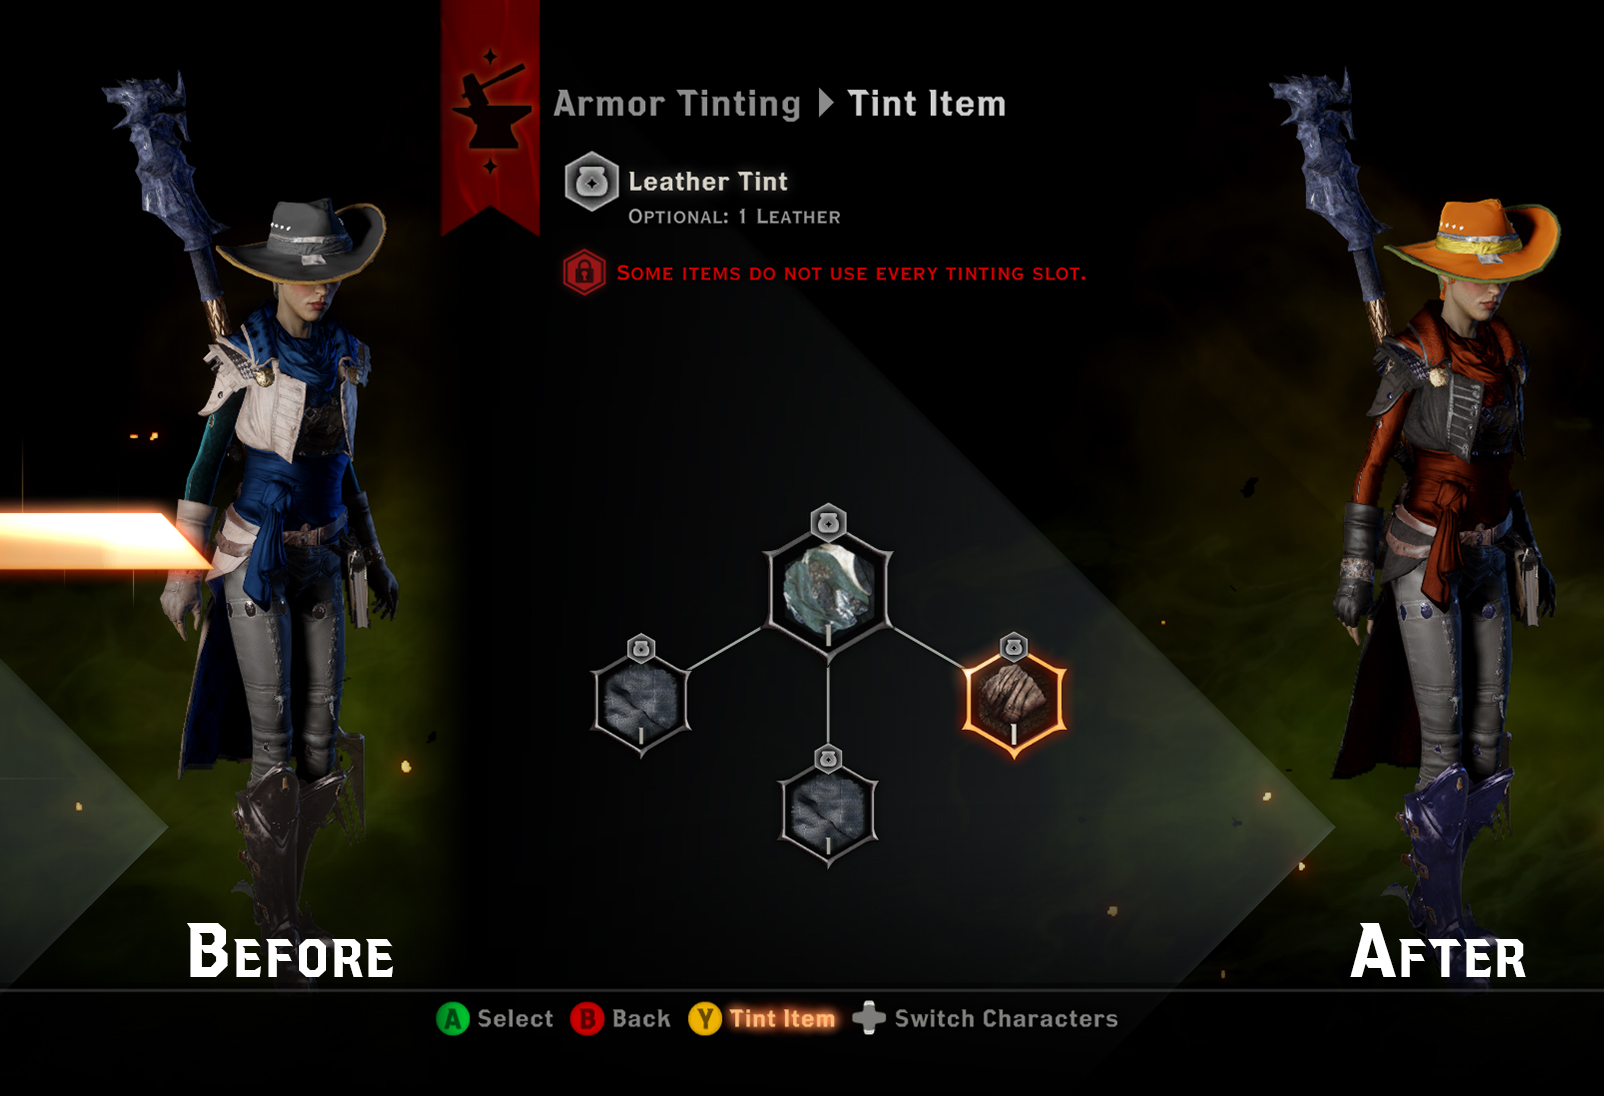 Dragon Age Inquisition Patch To Add Armour Tinting Party Storage Makeovers Vg247 Sorry for the poping sounds on the mic i need to get a new one because the one im useing is 5 to 10 years old lolneed silverite or dawnstone go here. vg247 com